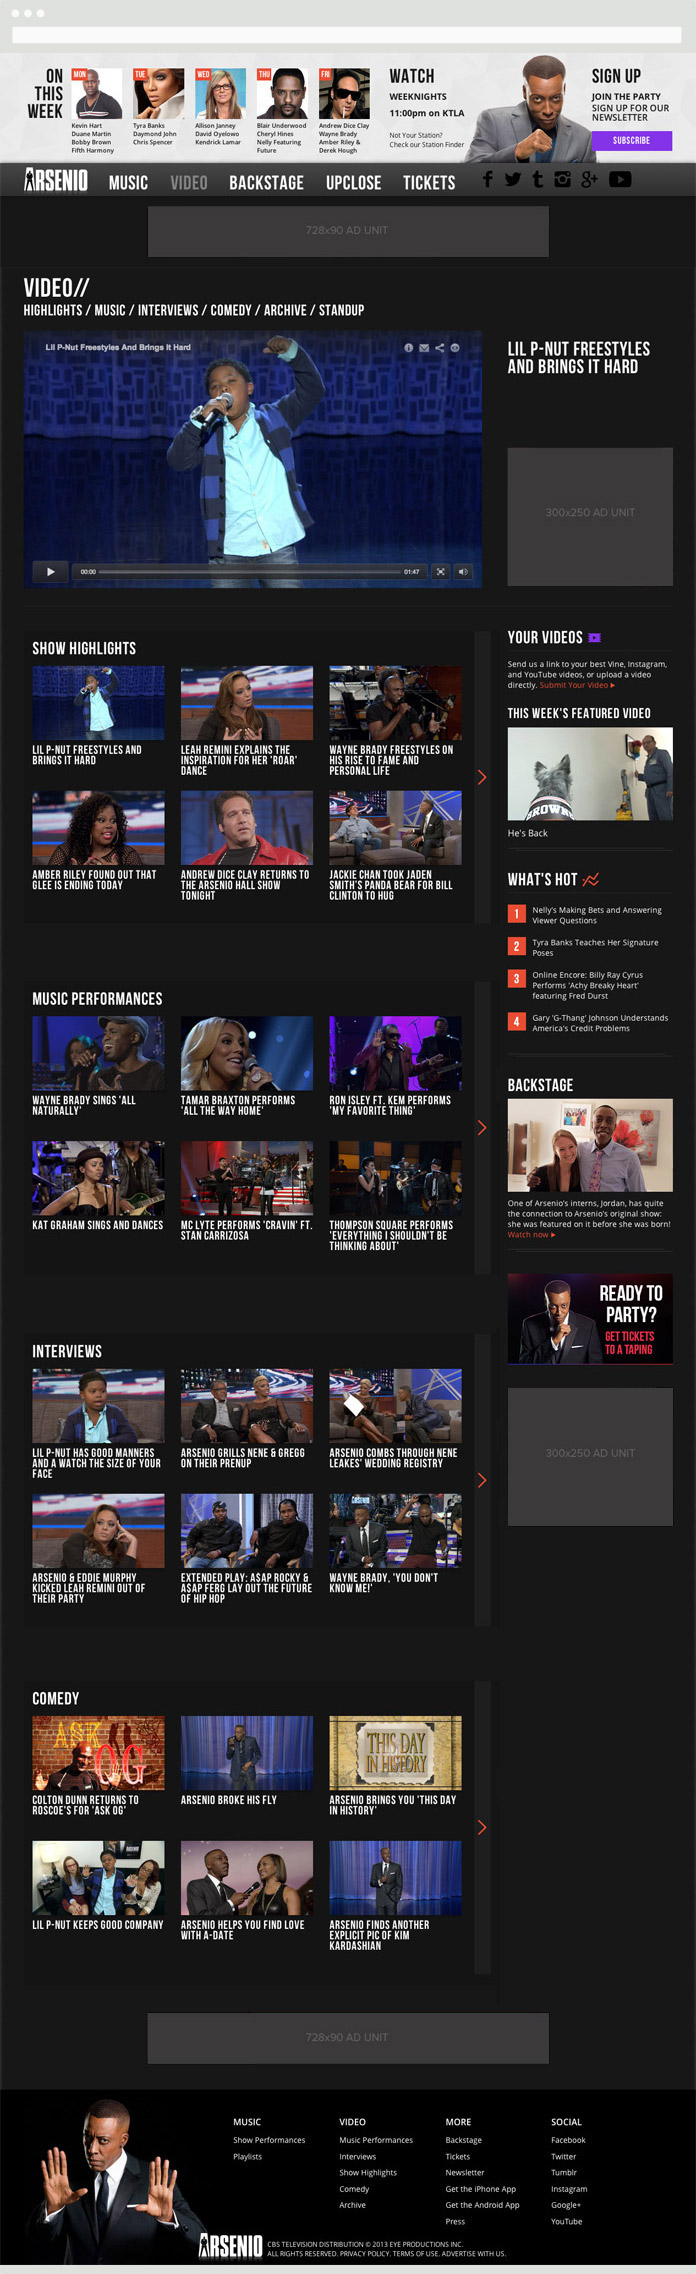 Image of the Arsenio Hall Video Page